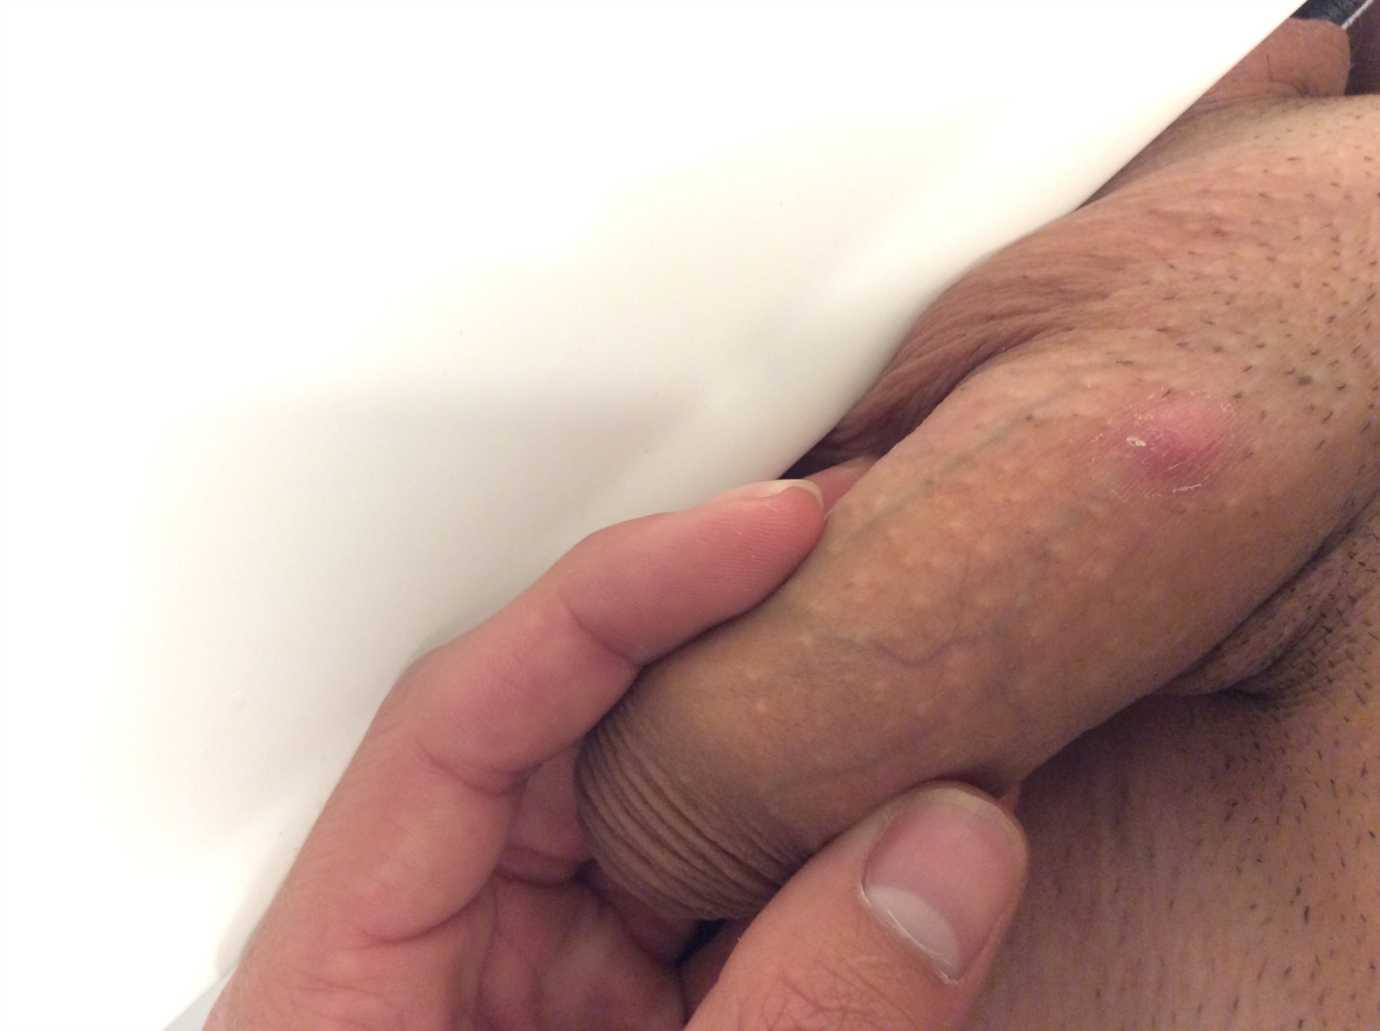 What are these tiny bumps on my penis shaft